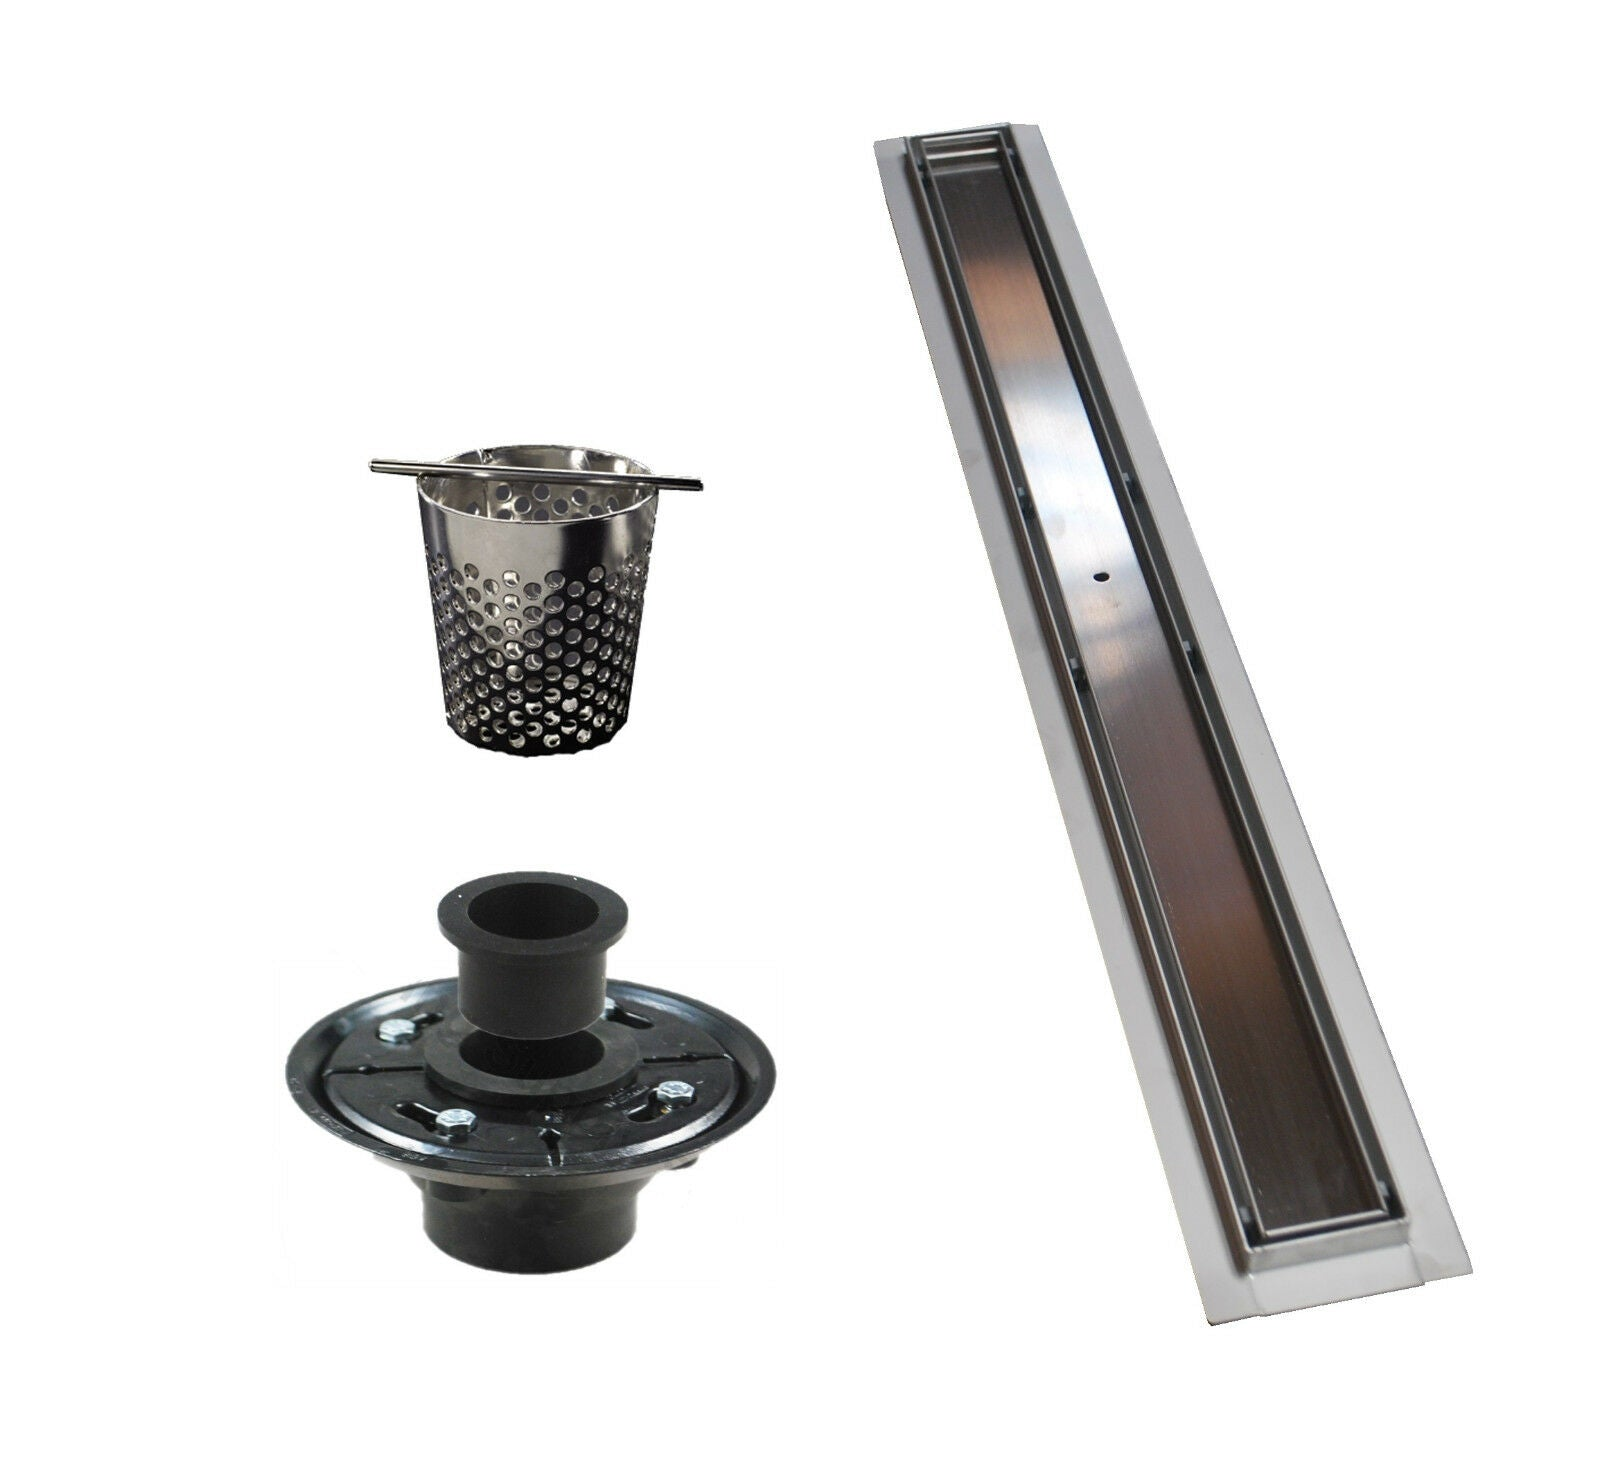 48 Inch Linear Drain with 2 Inch ABS Shower Drain Base Flange (6 Designs)